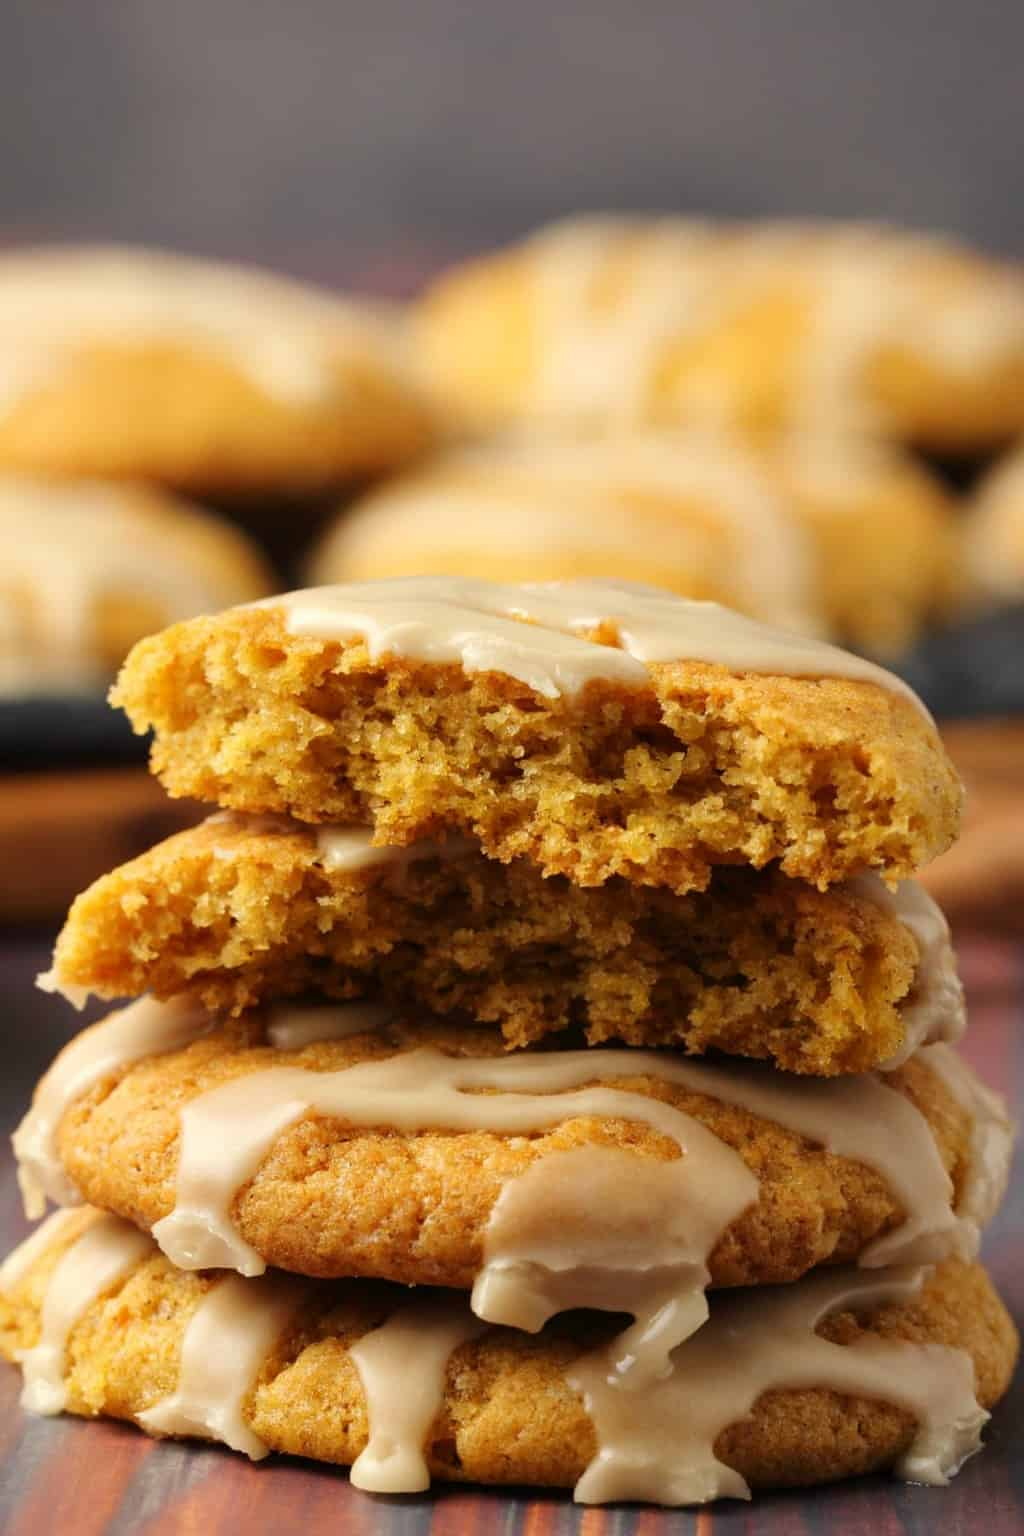 A stack of vegan pumpkin cookies topped with maple glaze, the top cookie broken in half to show the center.